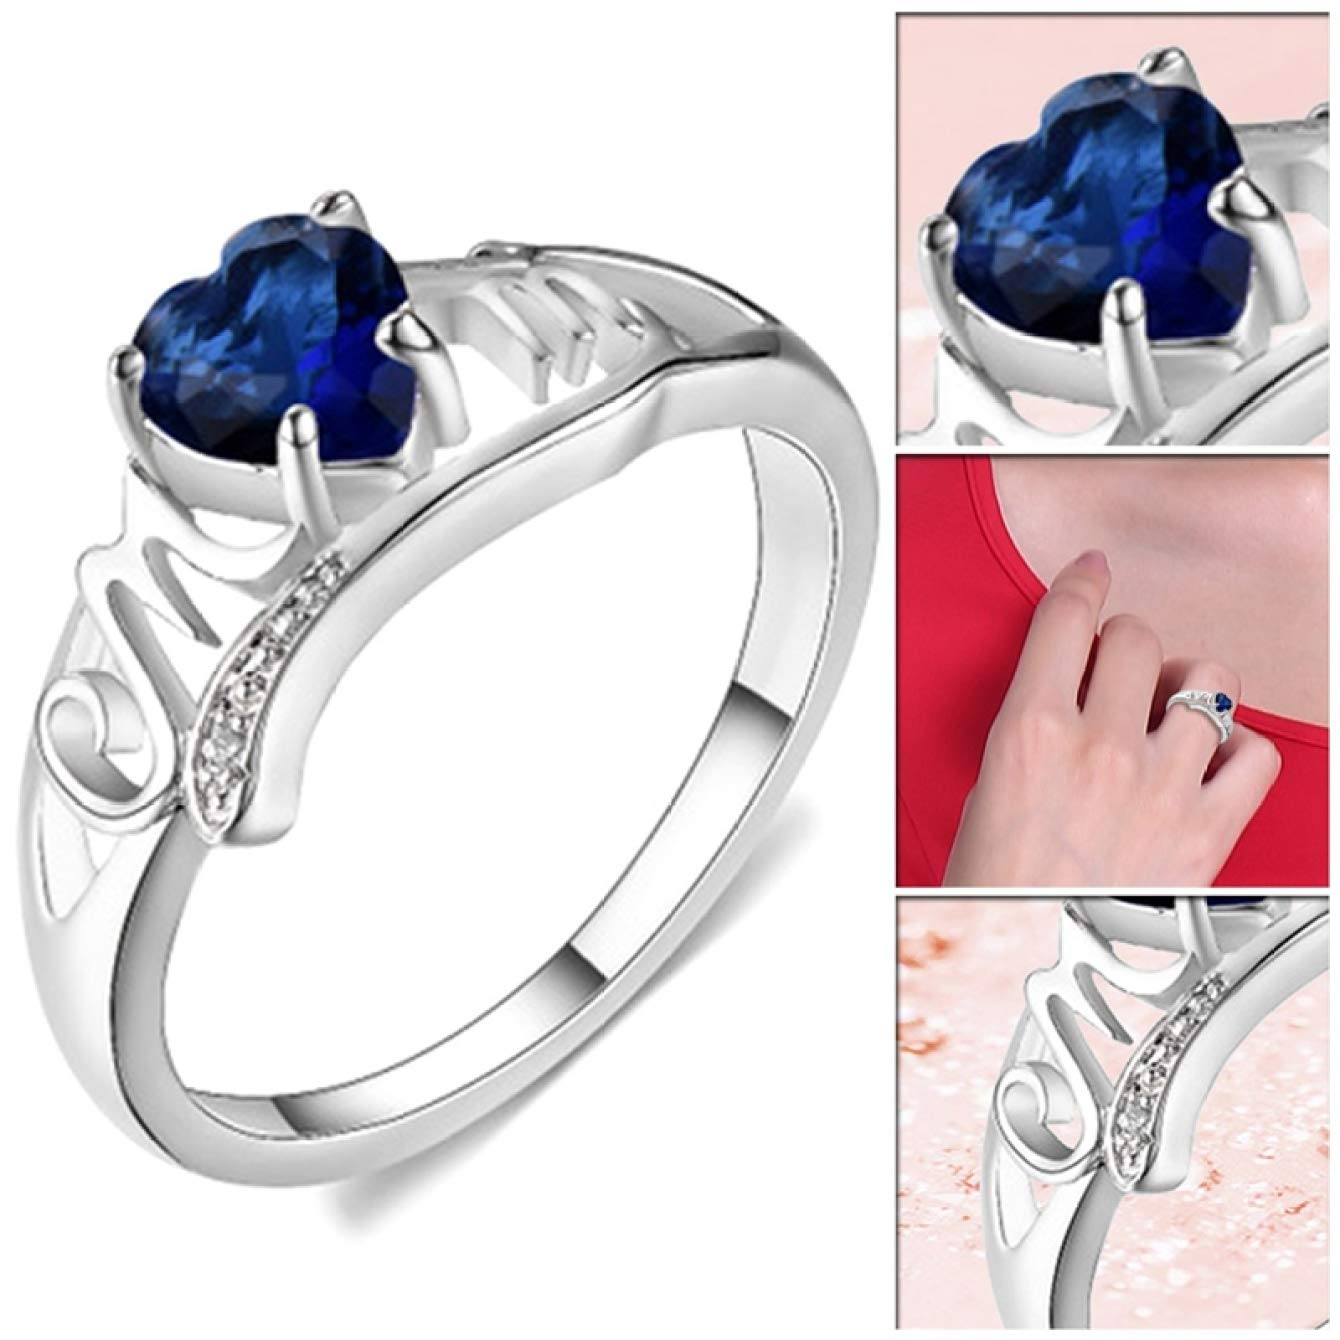 Multi Size Women Personalized Simple Delicate Handmade Ring for Mothers Day Birthday Christmas Day yjhdjyyj String Ring for Happy Mothers Day